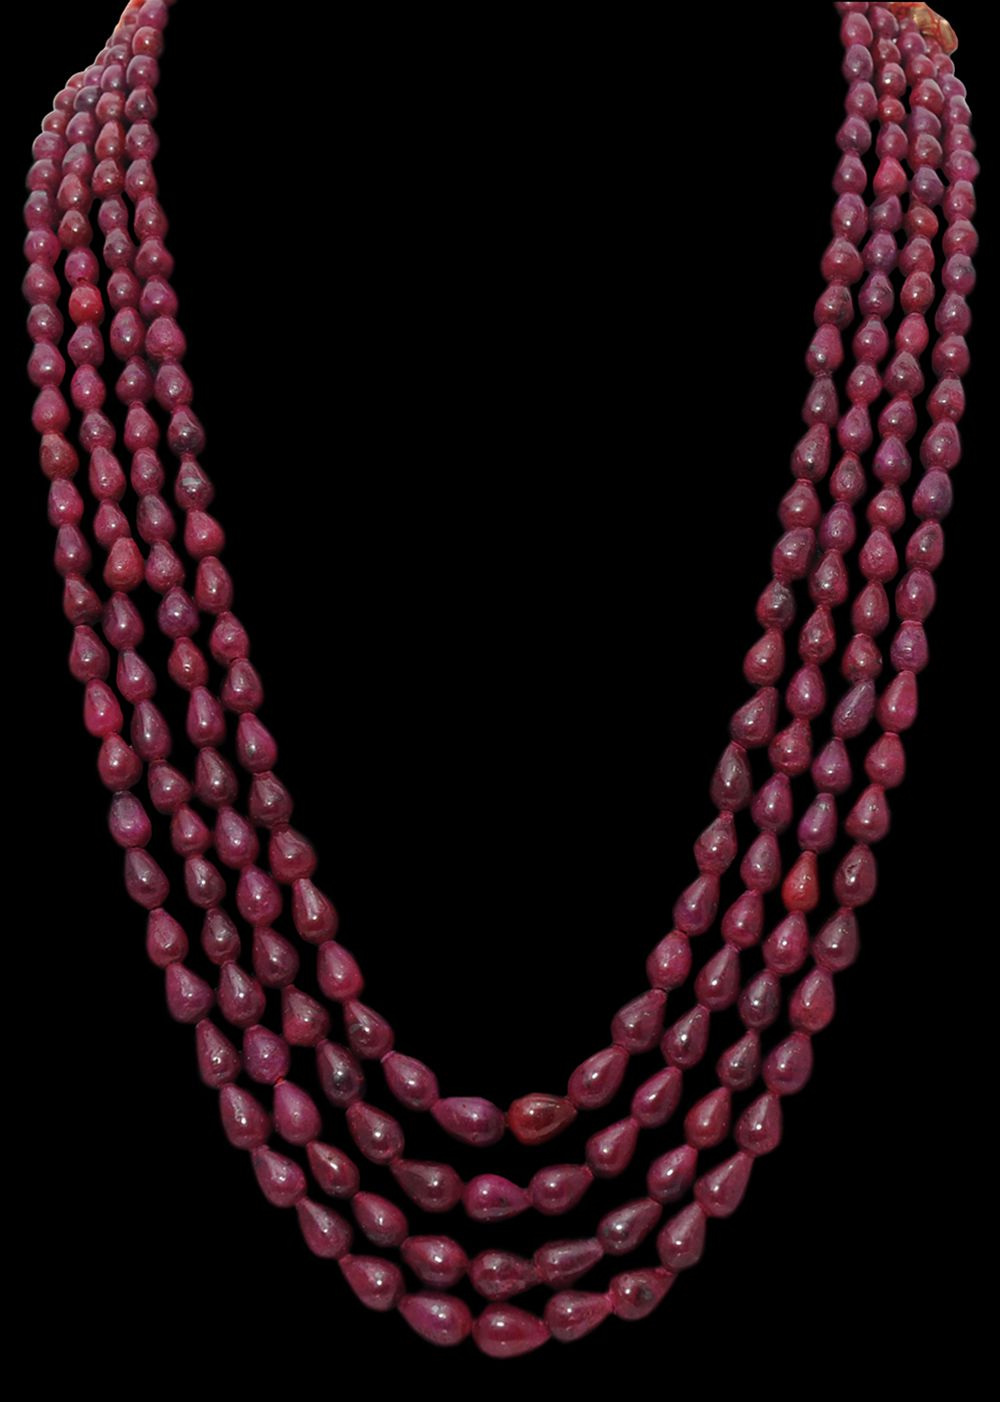 4 Rows of Natural Ruby Gemstone Drop Shaped Bead Necklace